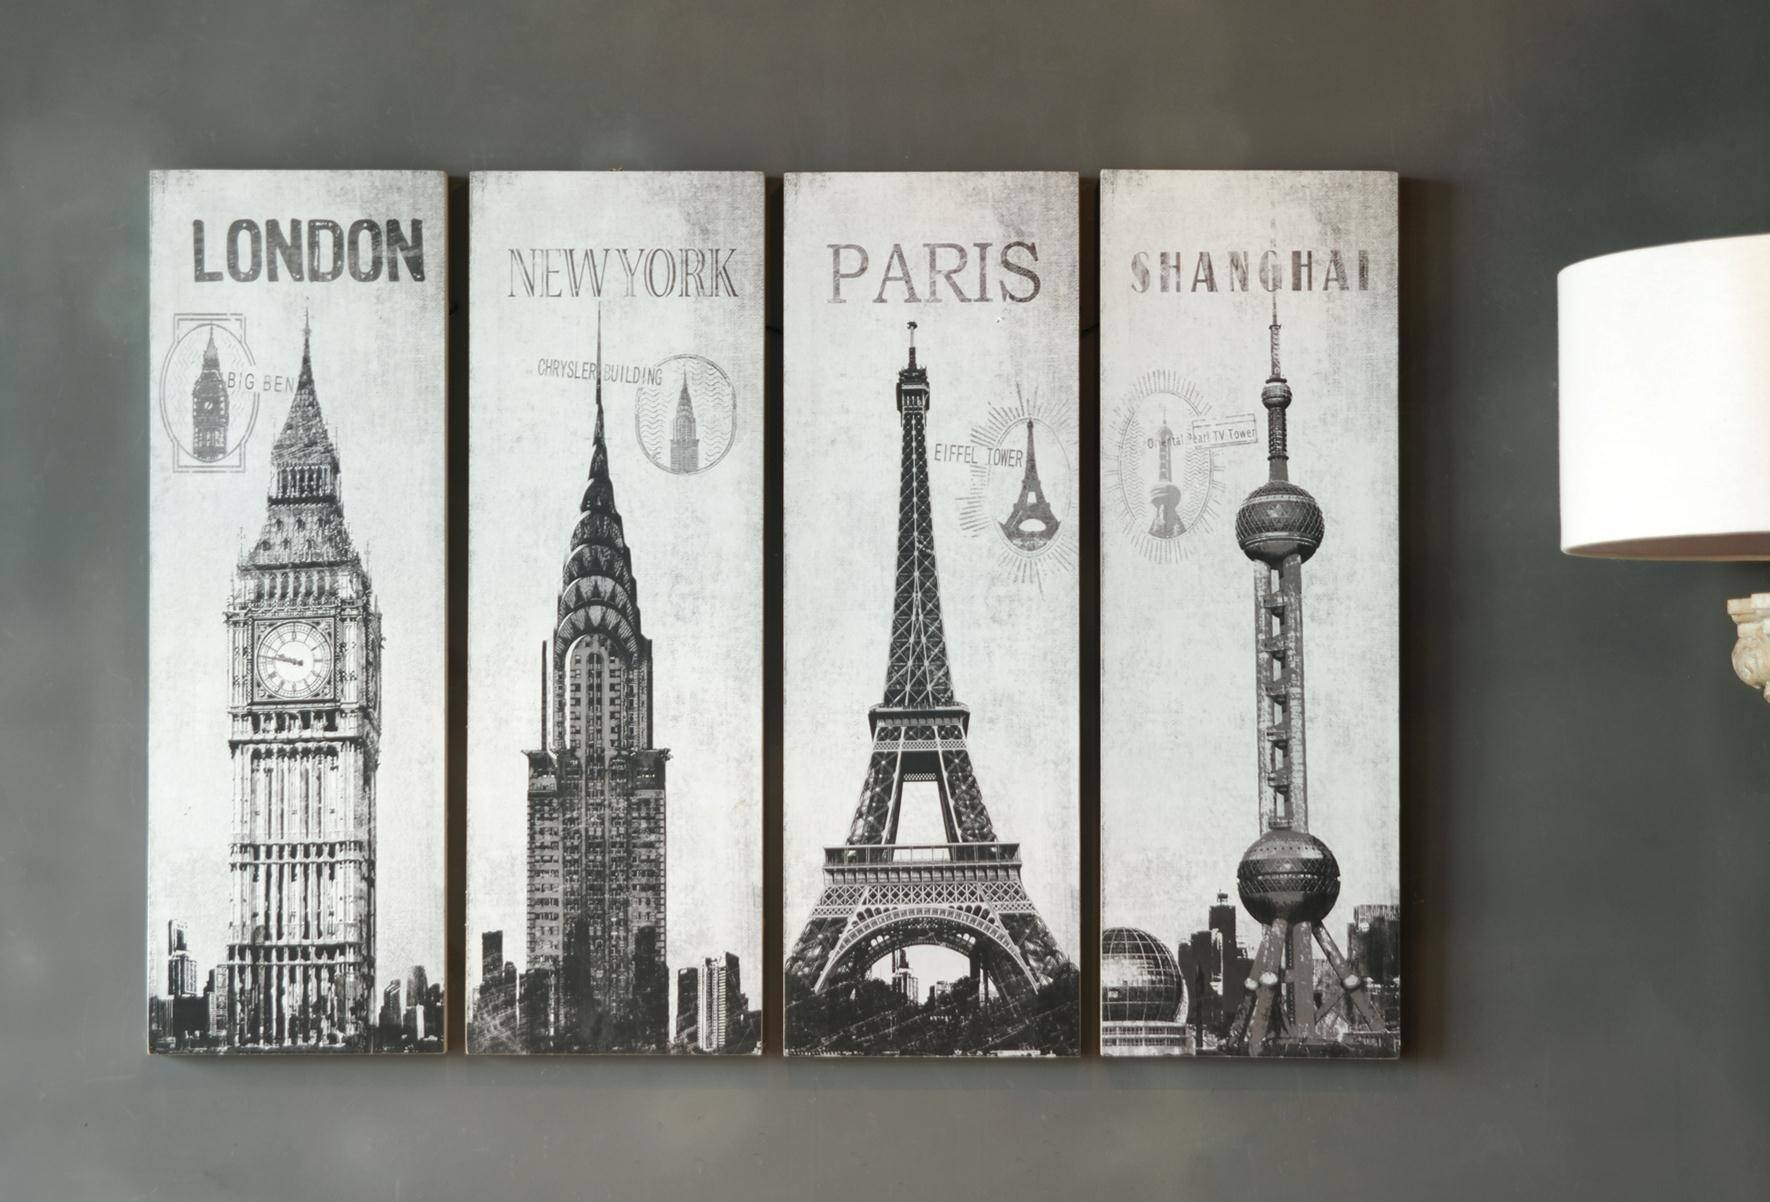 Wall Art Designs: Astounding Pictures Wall Art To Be Hung On Your In Most Current Photography Wall Art (View 13 of 25)